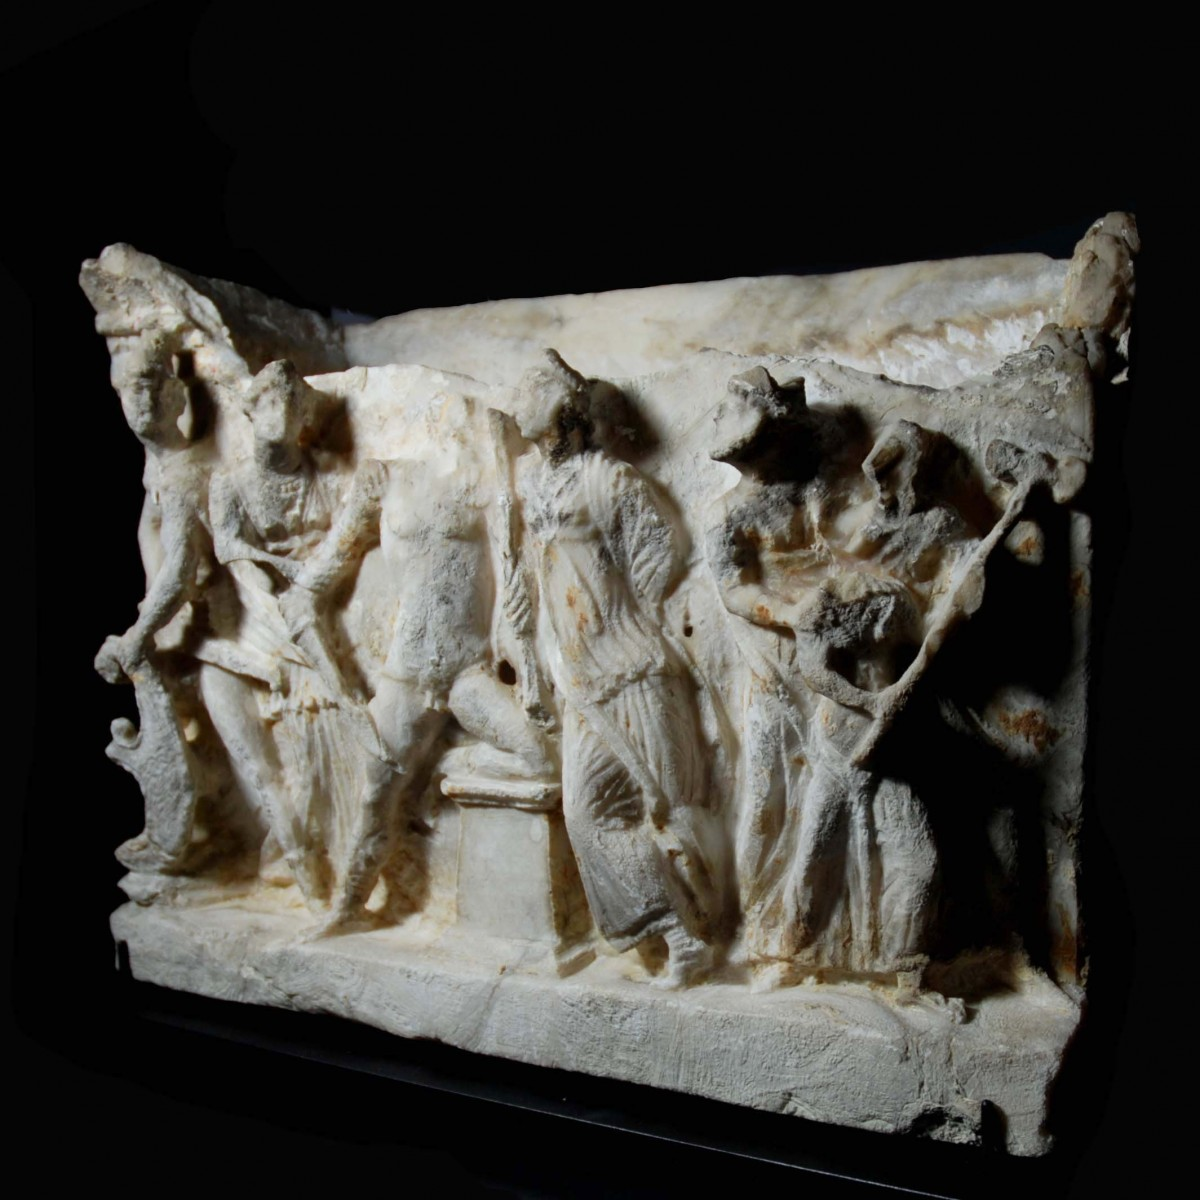 Etruscan alabaster cinerary urn showing the recognition of Paris right